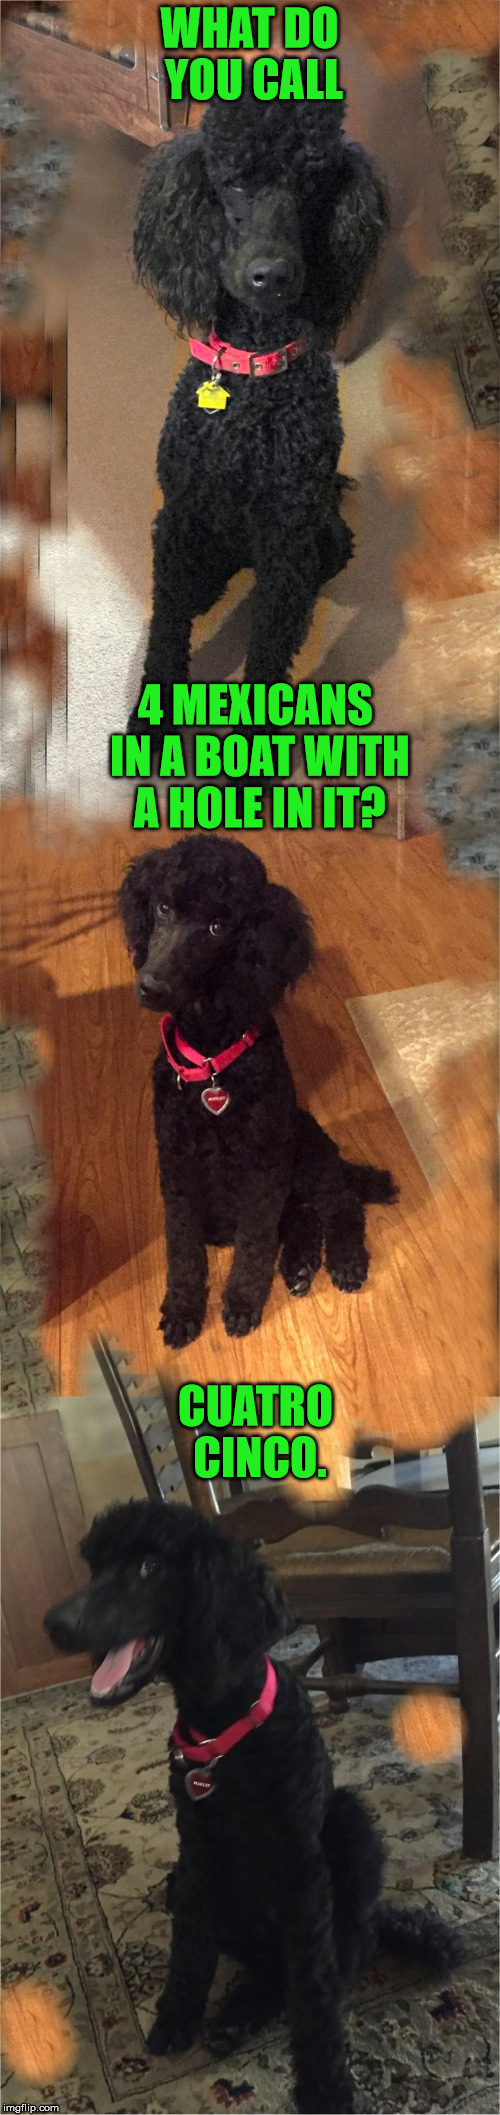 Marley says quatrooooo sinkoooo | WHAT DO YOU CALL CUATRO CINCO. 4 MEXICANS IN A BOAT WITH A HOLE IN IT? | image tagged in the marley generator meme meme,gump,funny,memes,doggy,poodle | made w/ Imgflip meme maker